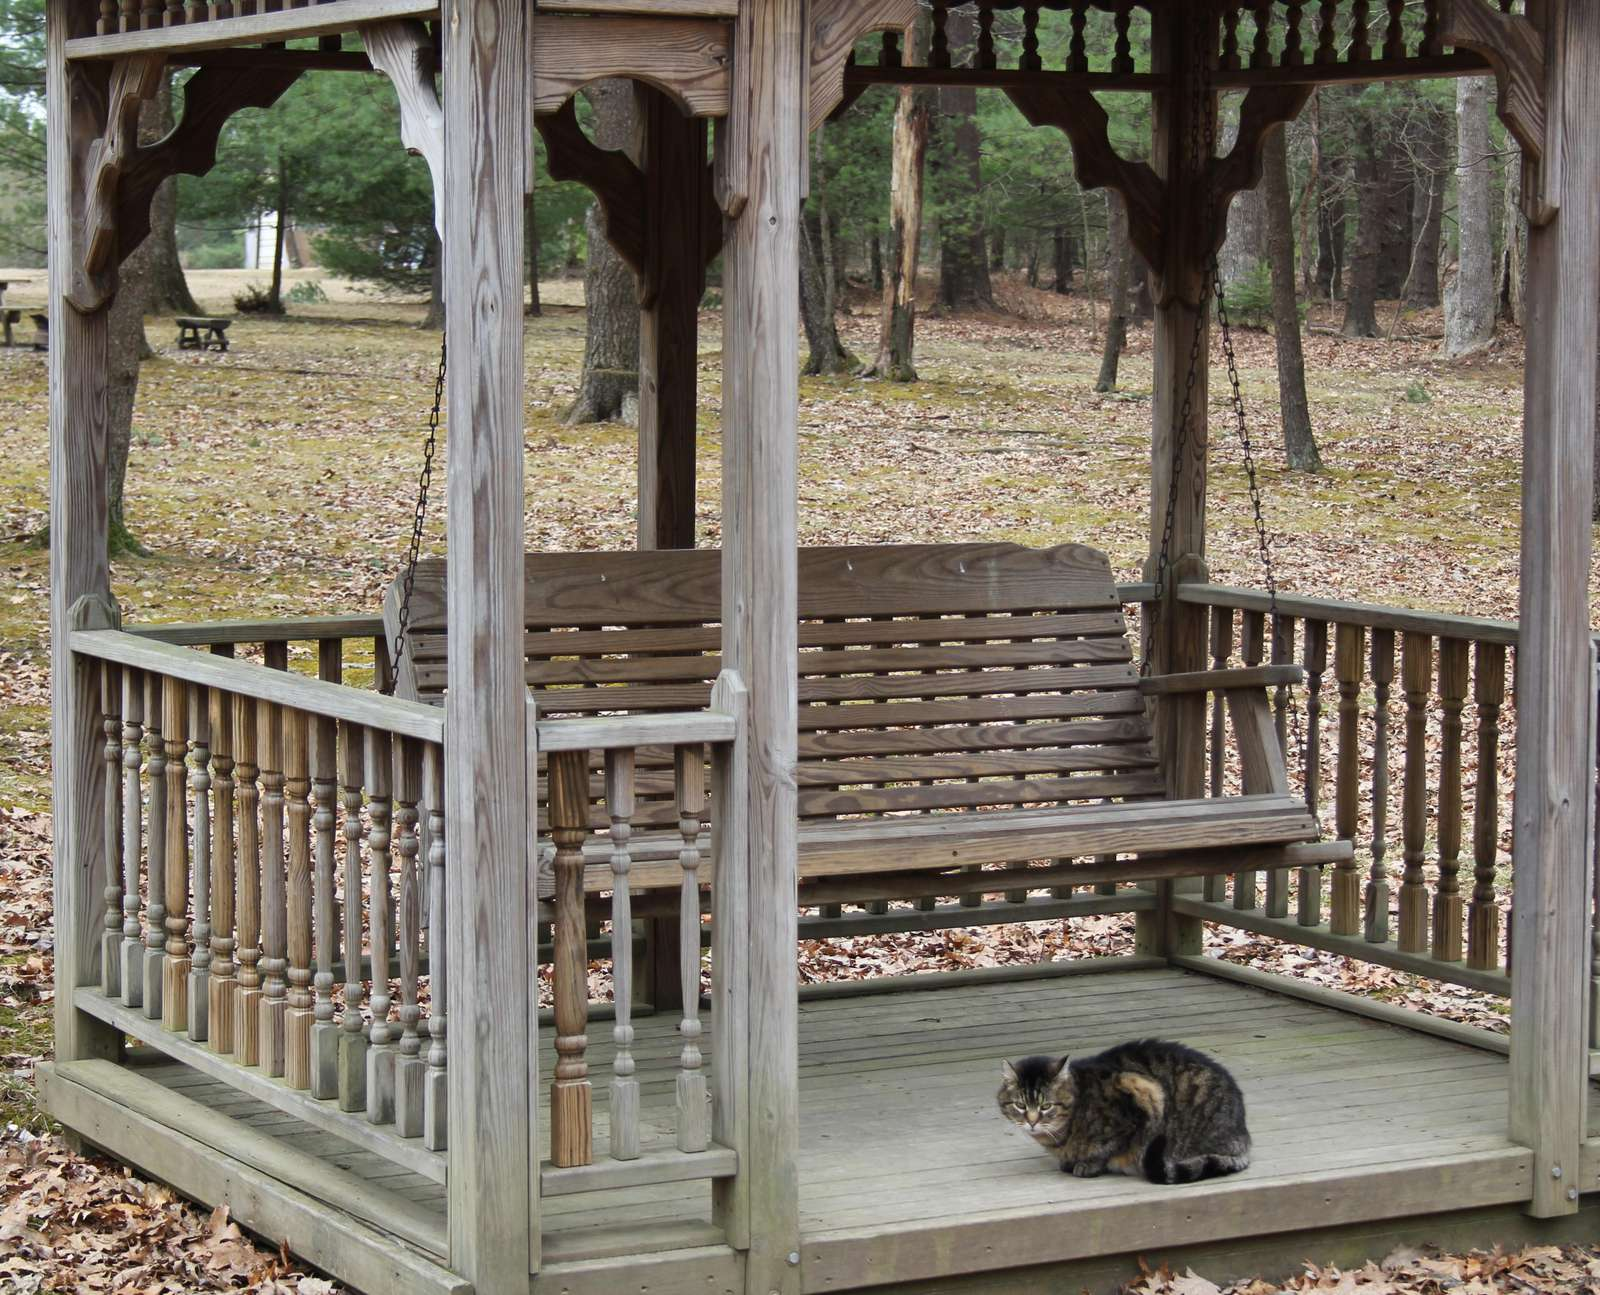 Gazebo with Kitty at Douglas Fir Cabin